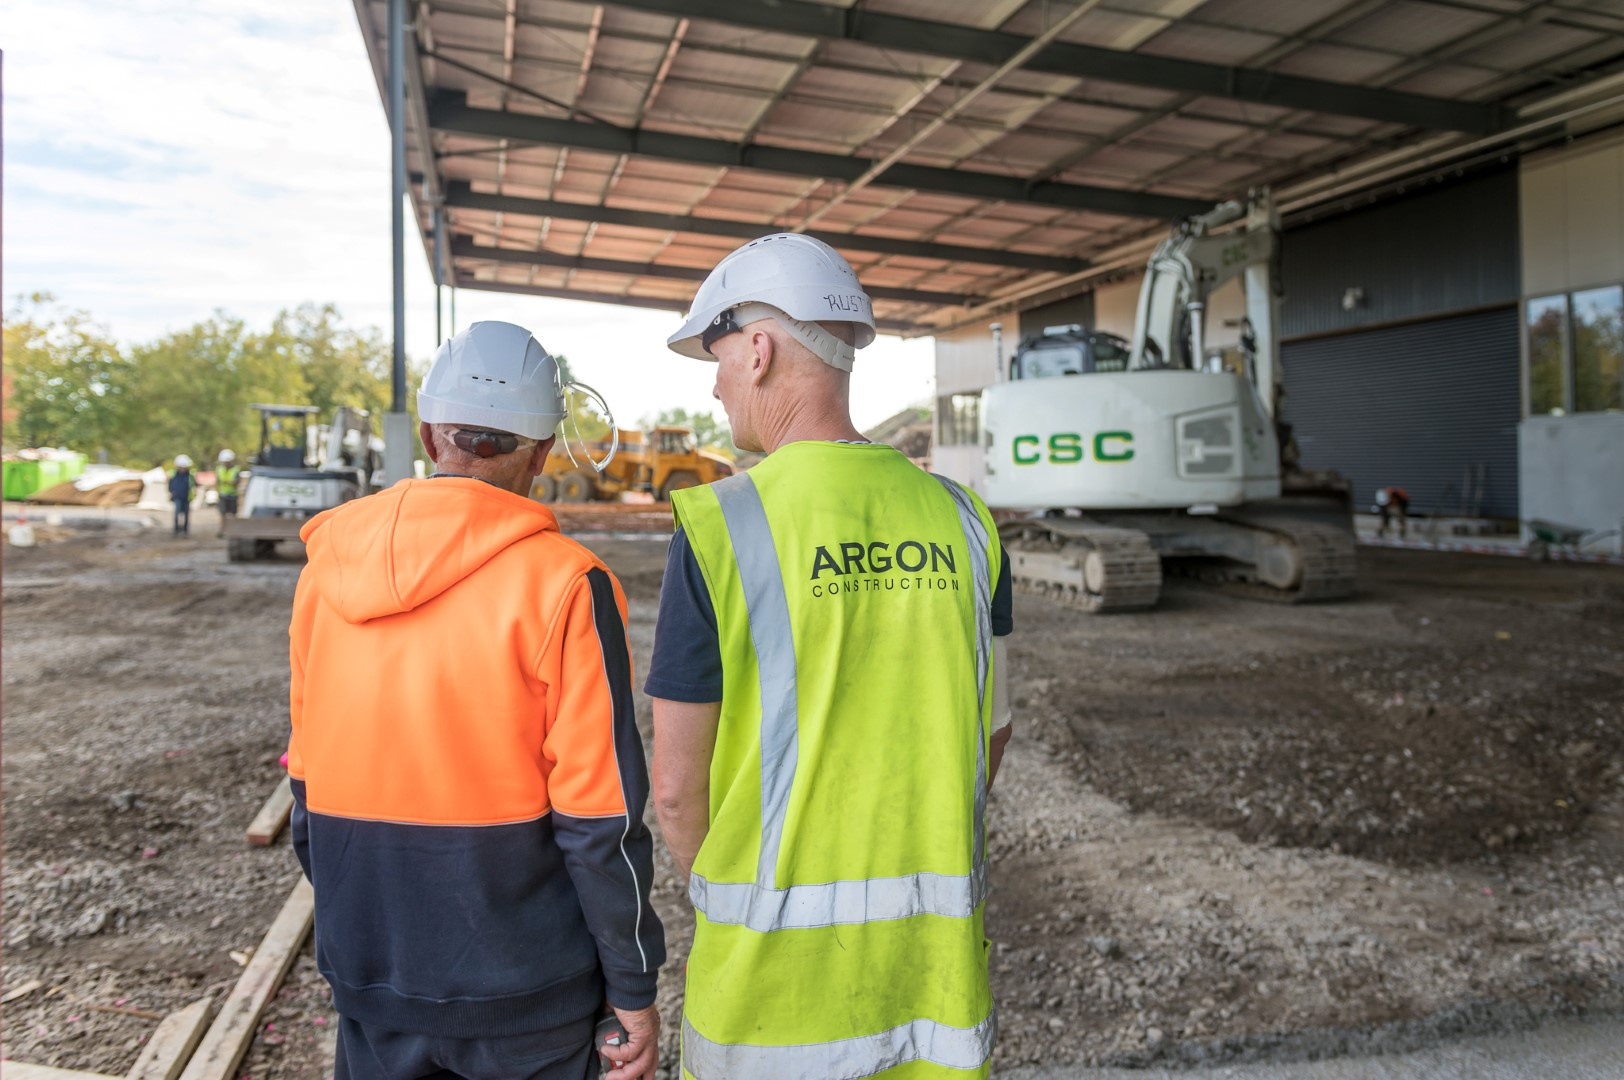 Argon construction worker talking